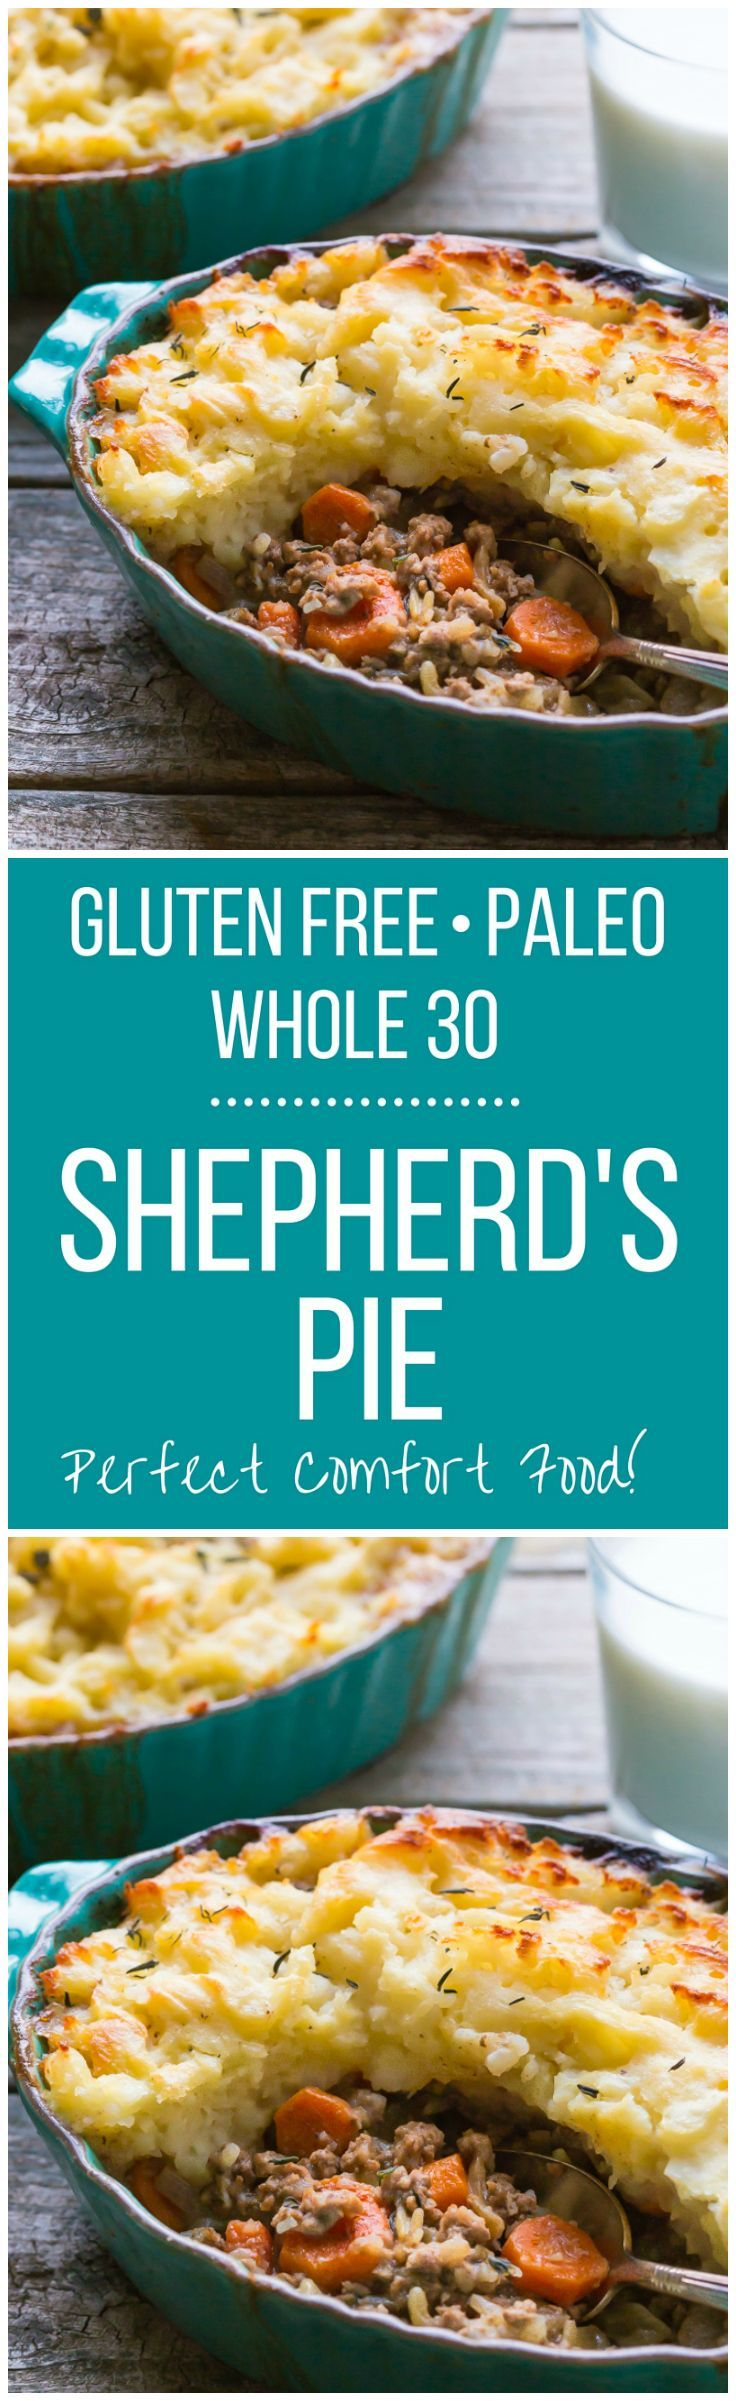 The BEST recipe for Gluten Free Shepherds Pie! It's easy to make it Paleo or Whole 30 too, perfect comfort food for your whole family!: